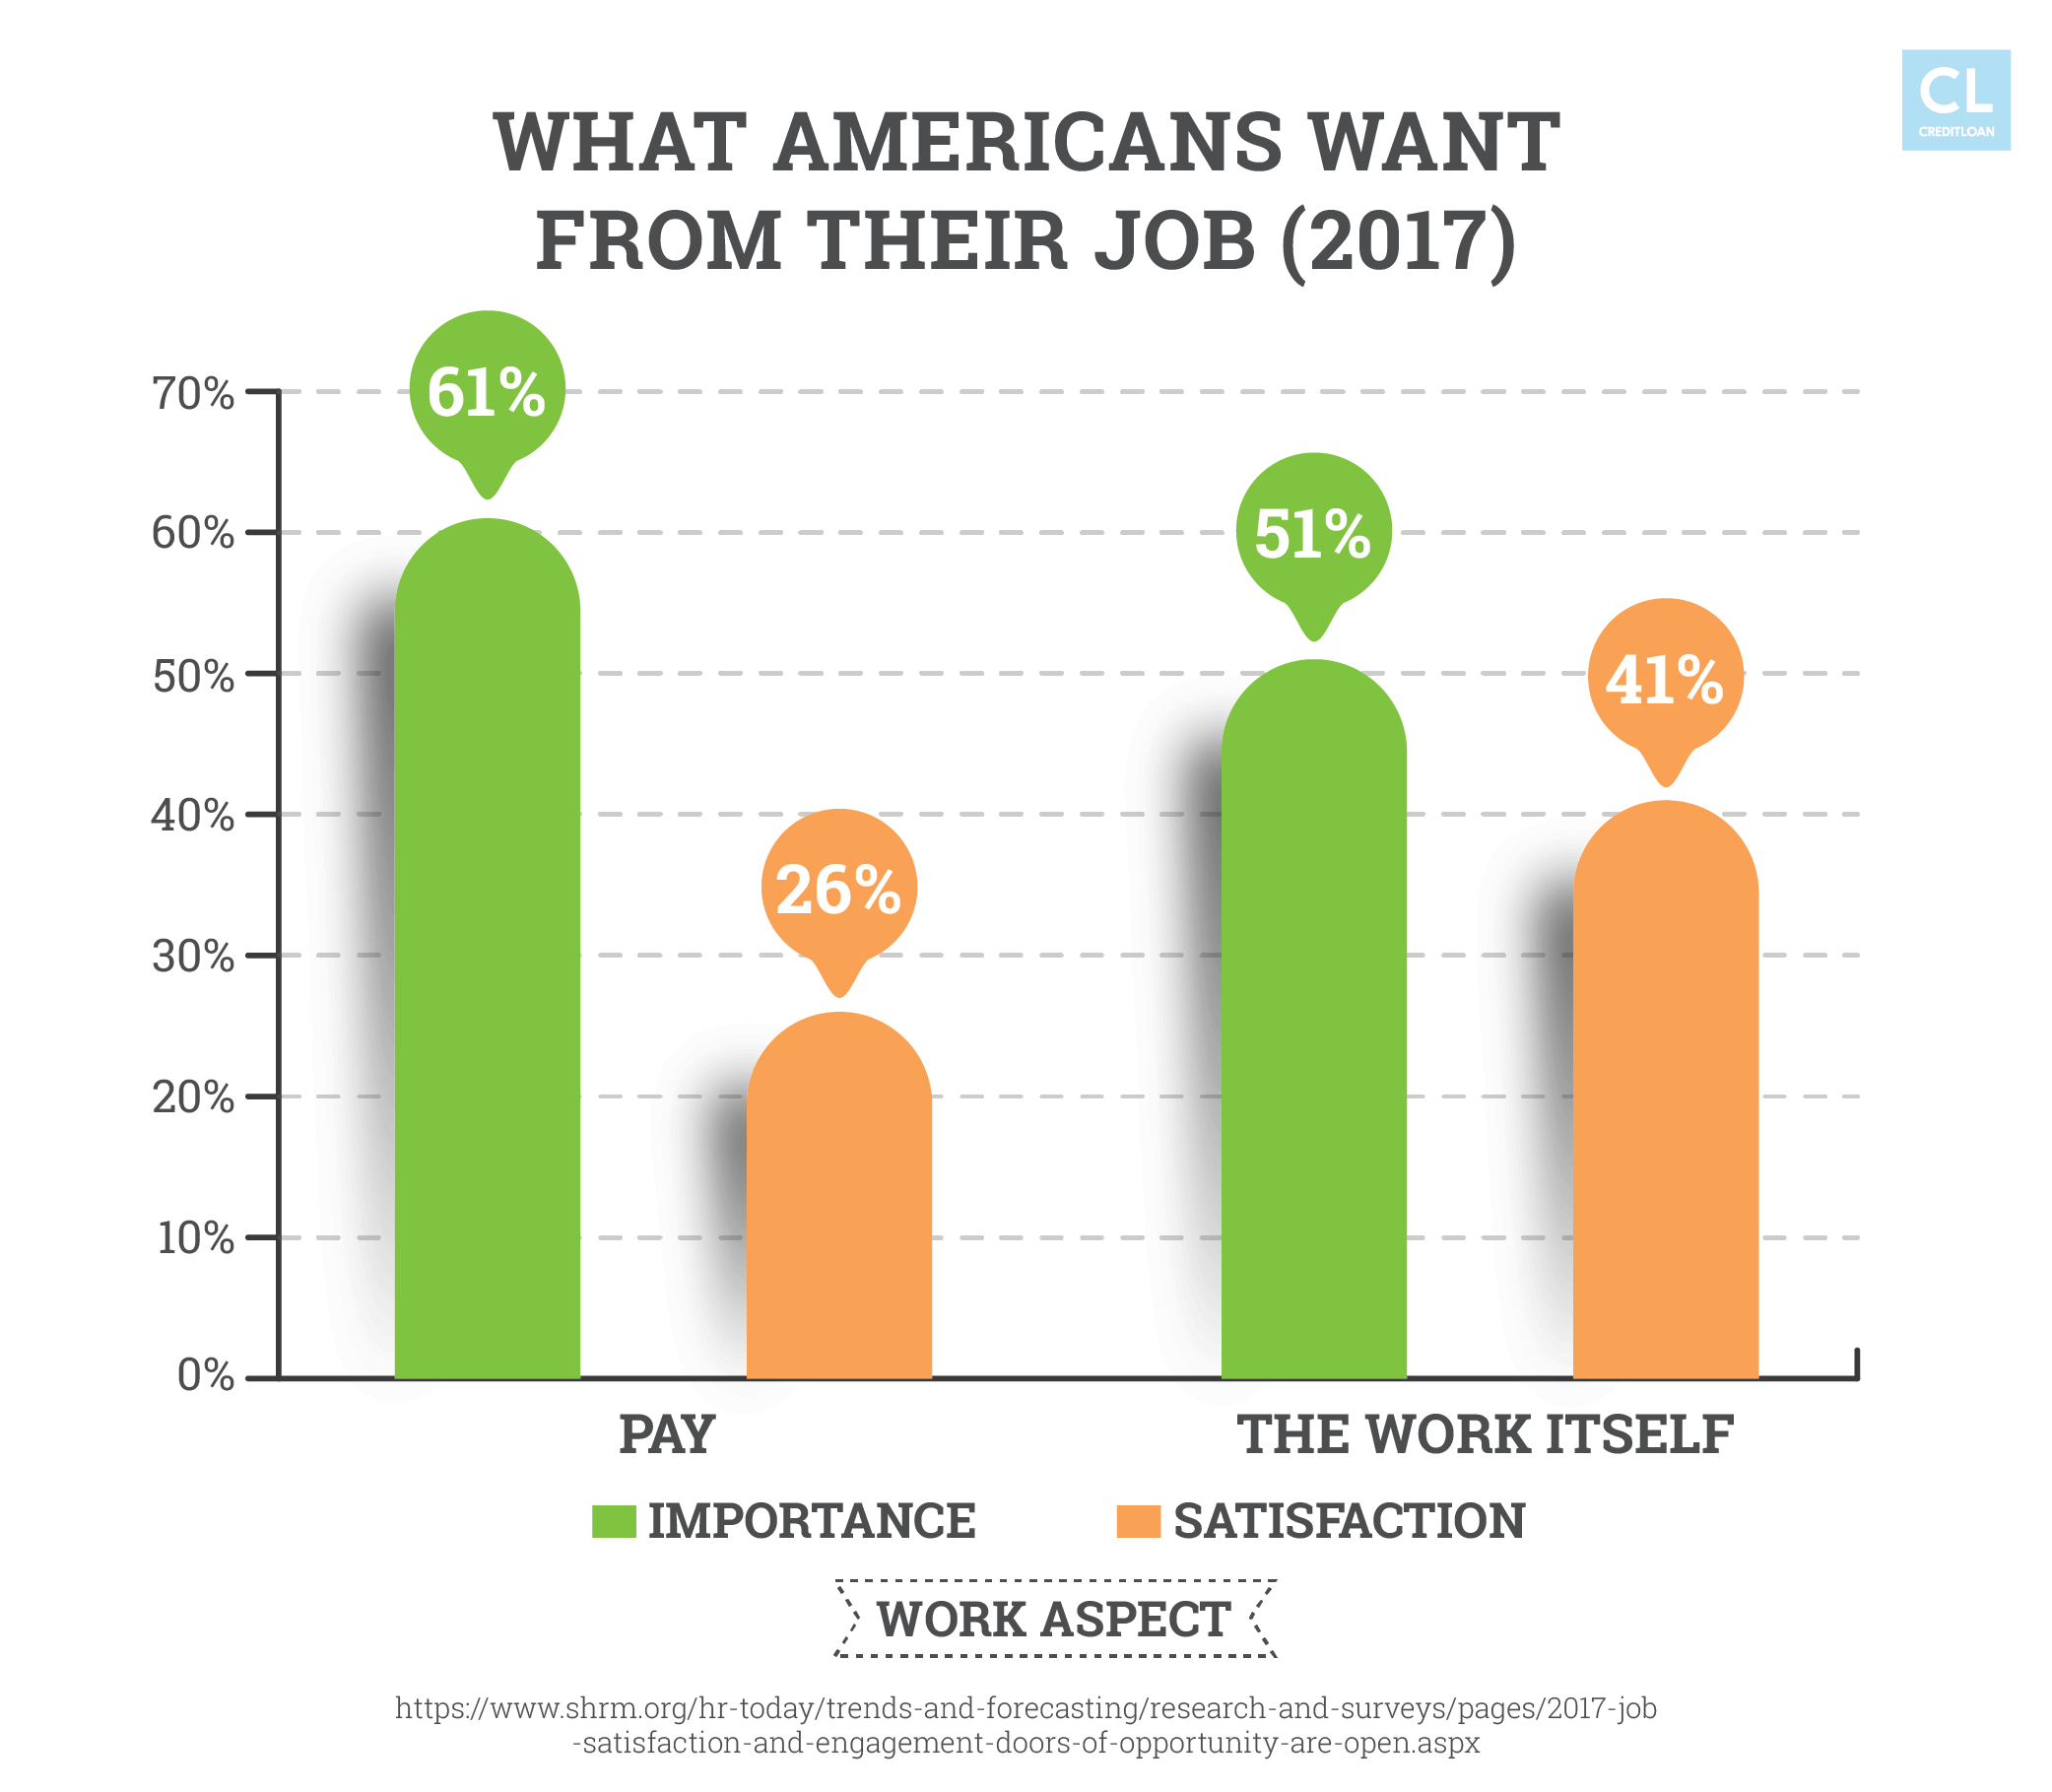 What Americans Want from Their Job (2017)